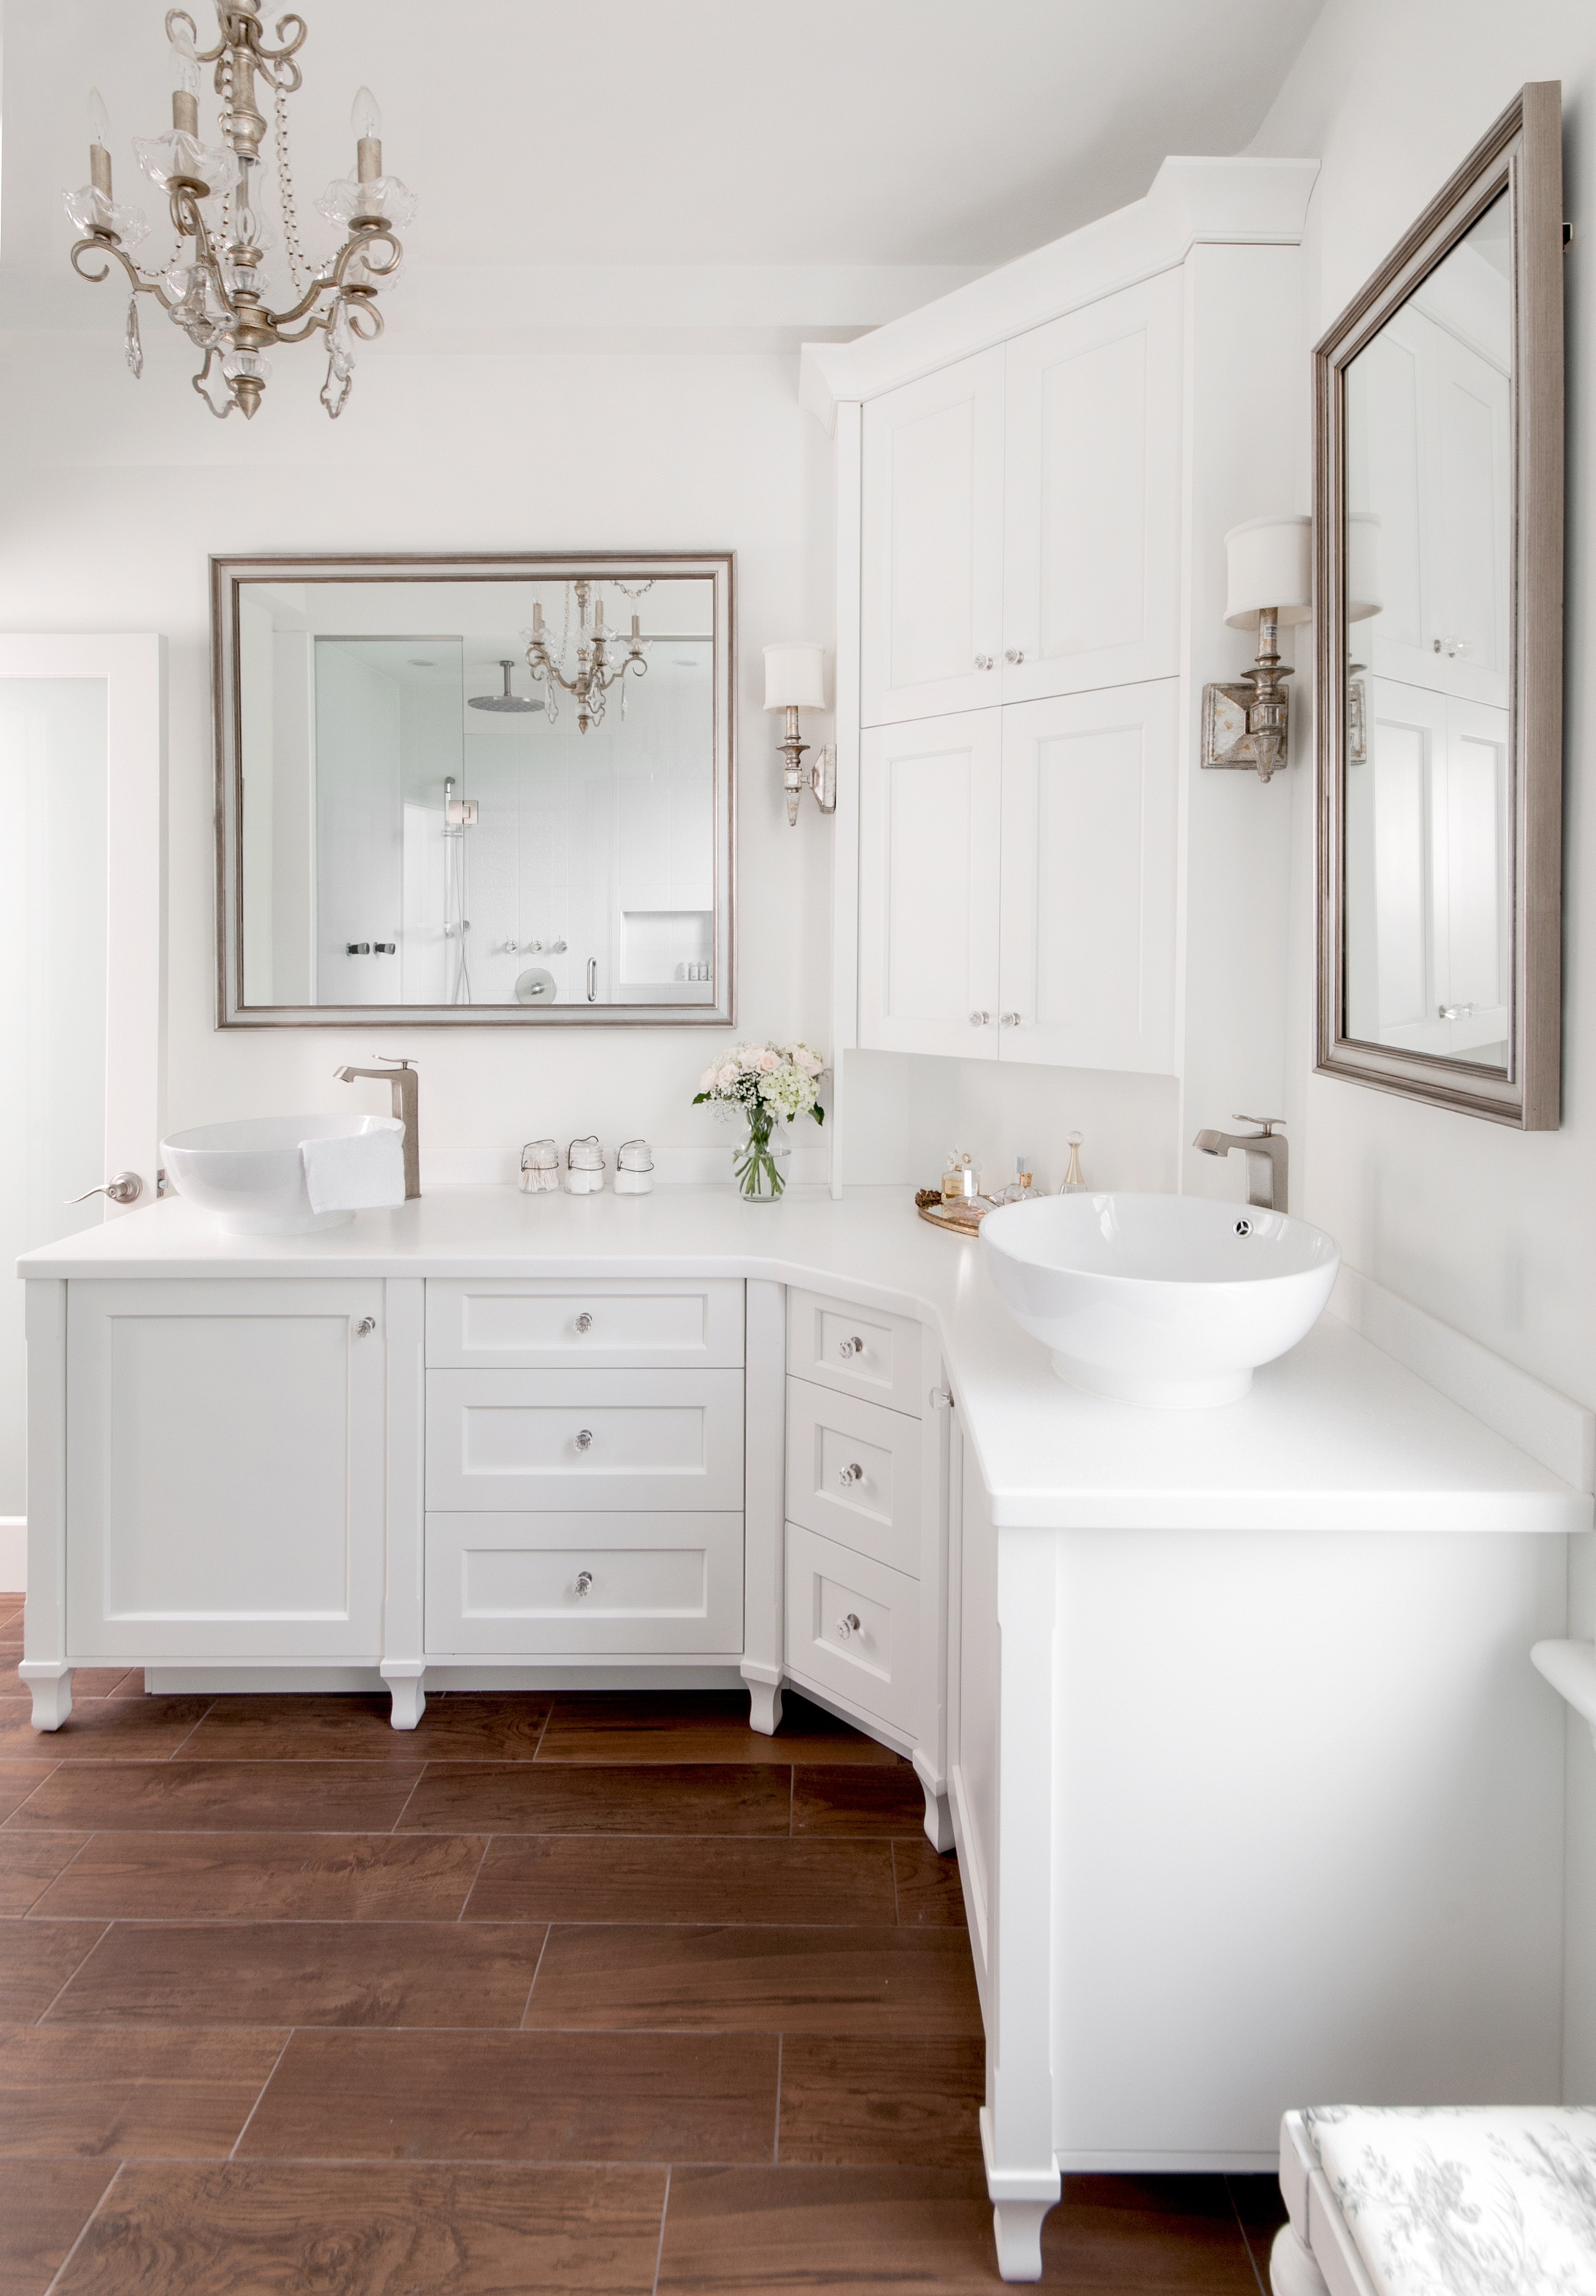 Bathroom renovation our most elegant design yet creating contrast designs Bathroom design ideas houzz